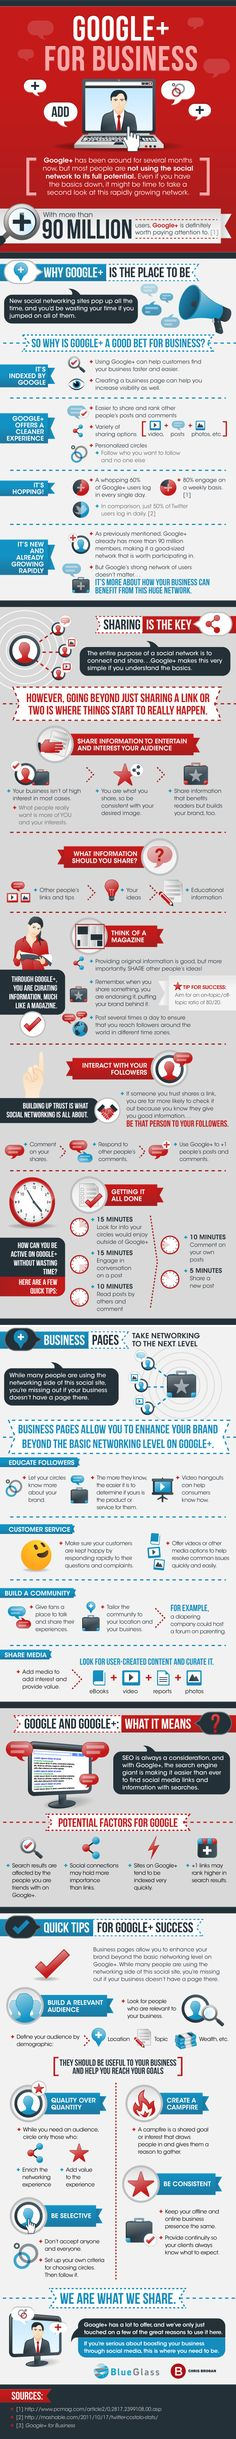 Google+ For Business - Infographic #socialmedia #sm #marketing